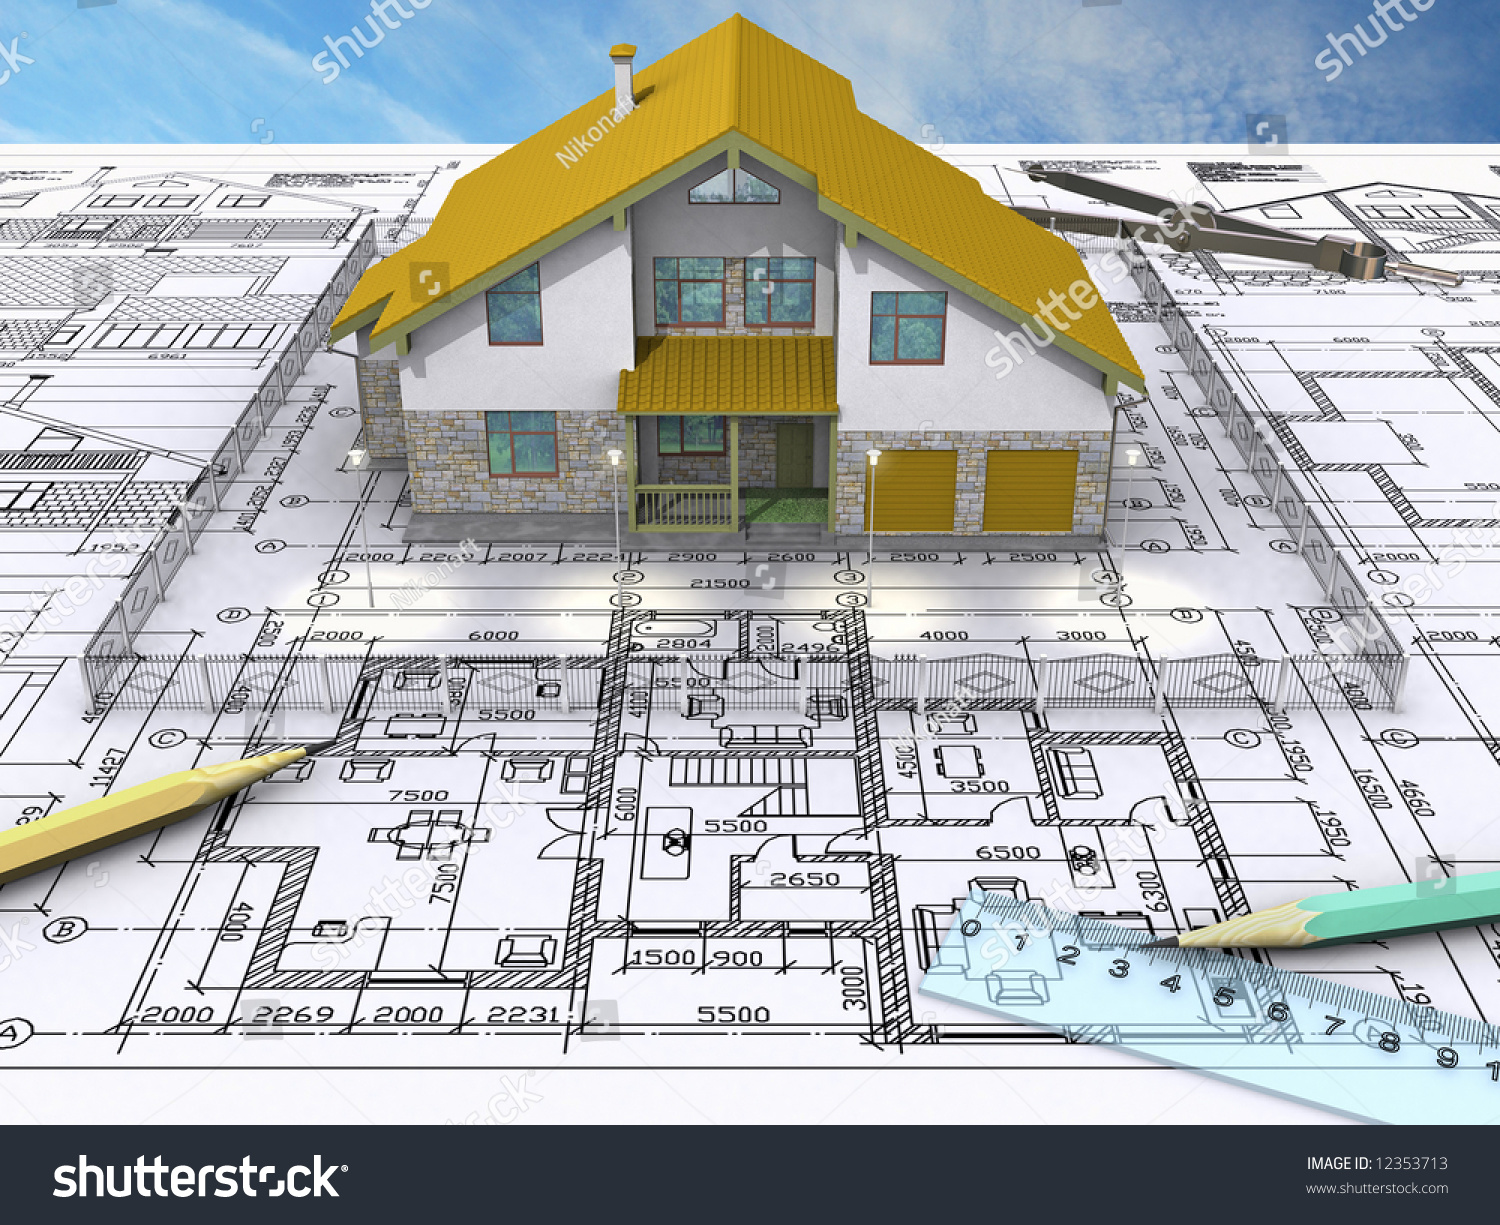 esidential House On rchitect'S Drawing. Front View. Stock Photo ... - ^